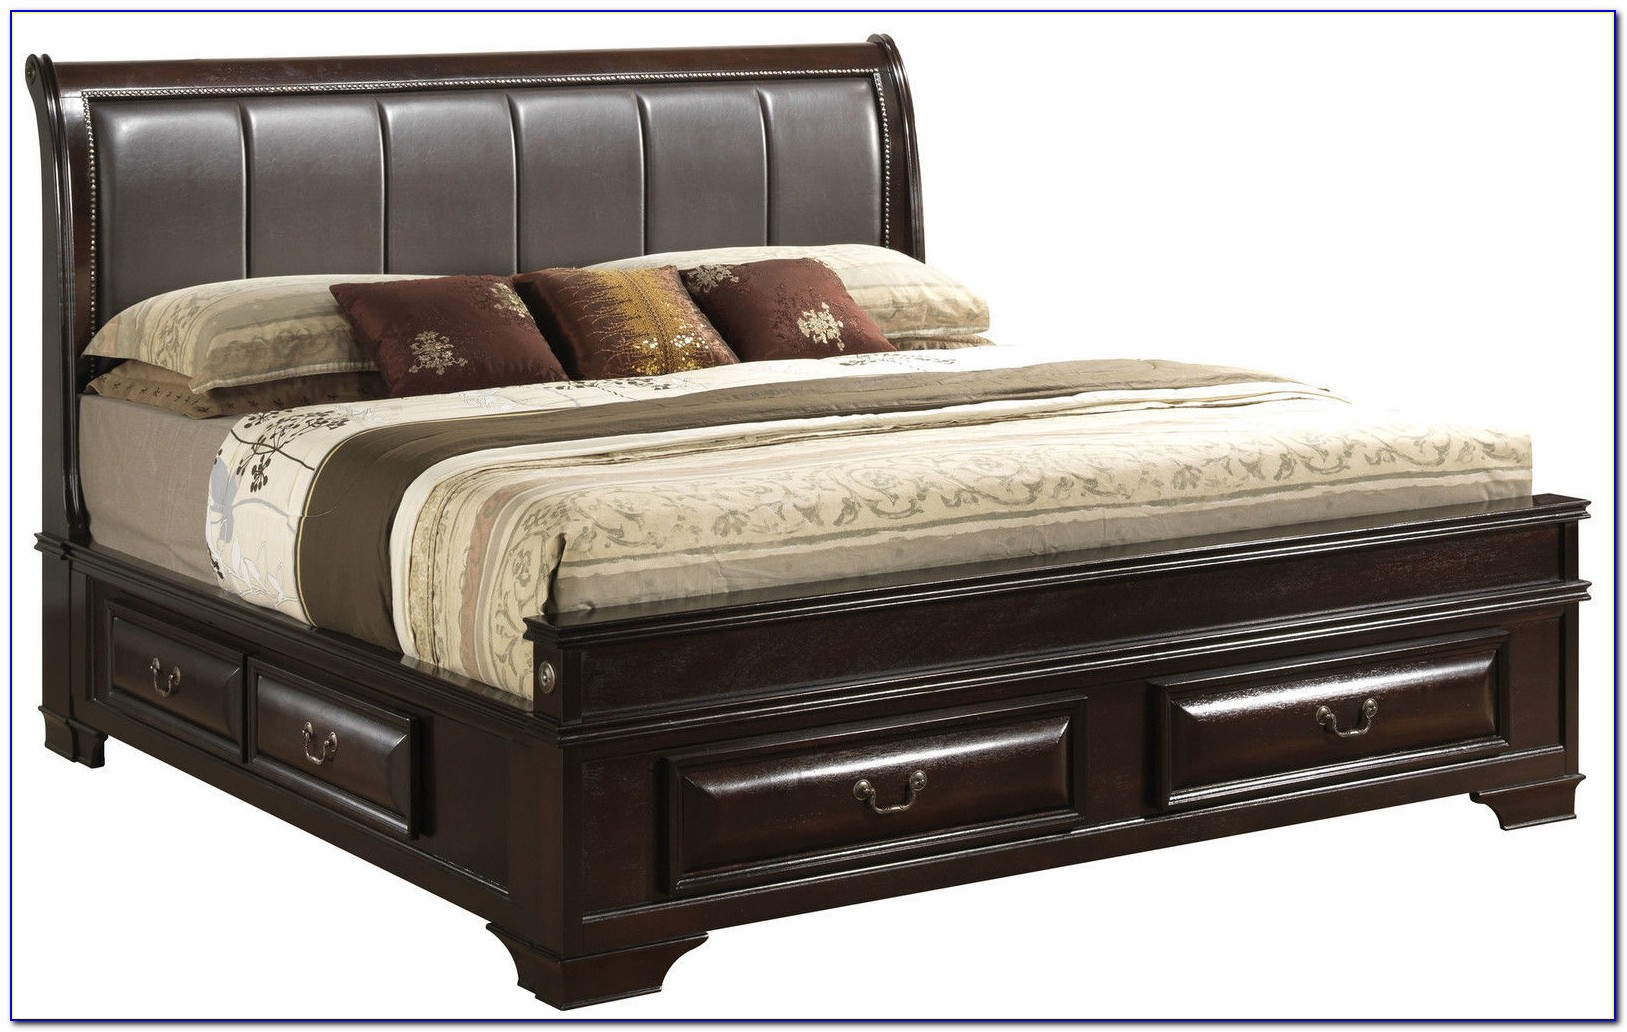 King Bed Frame With Headboard Brackets